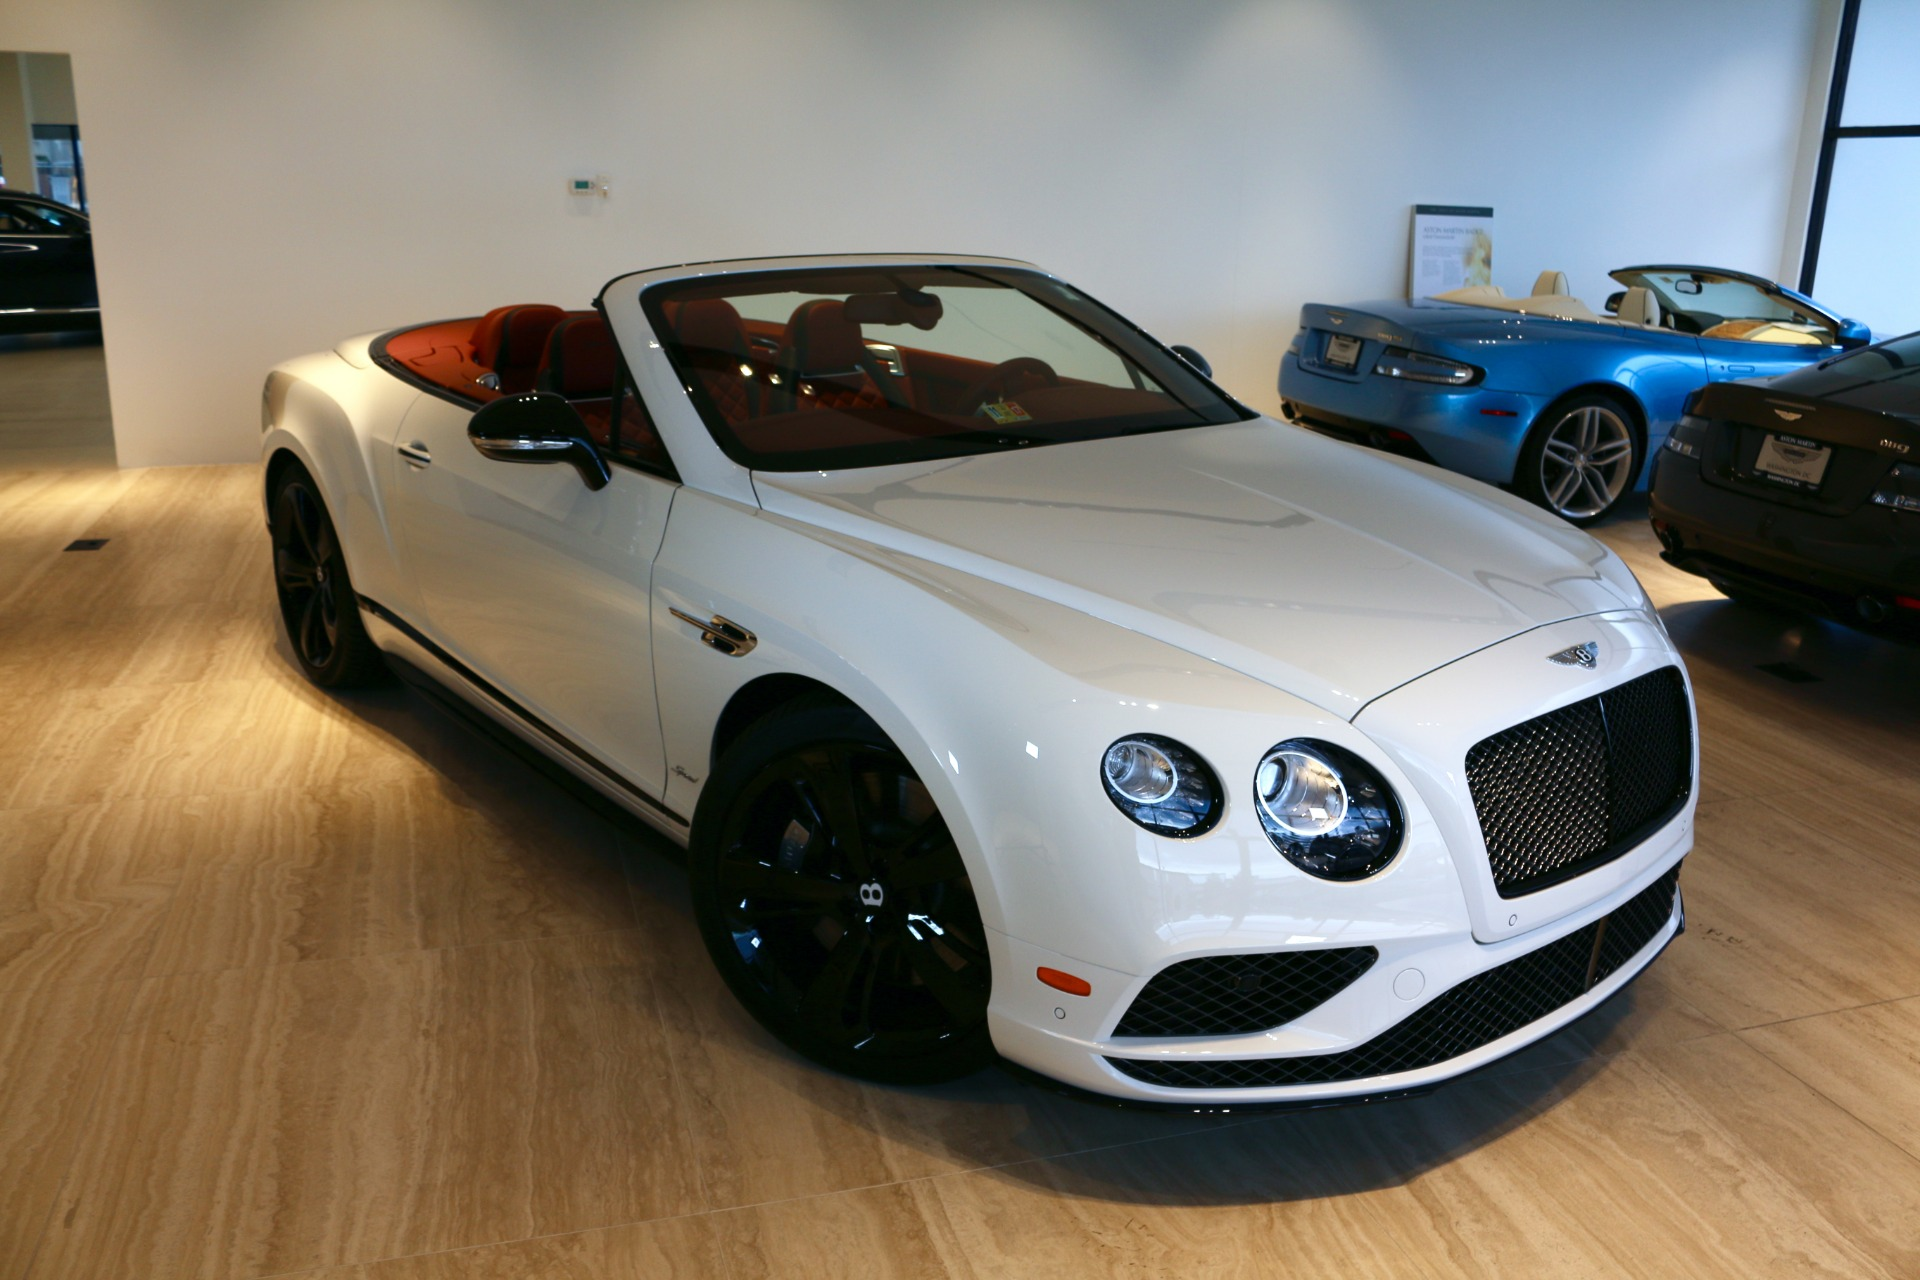 2017 bentley continental gtc speed stock # 7nc059999 for sale near